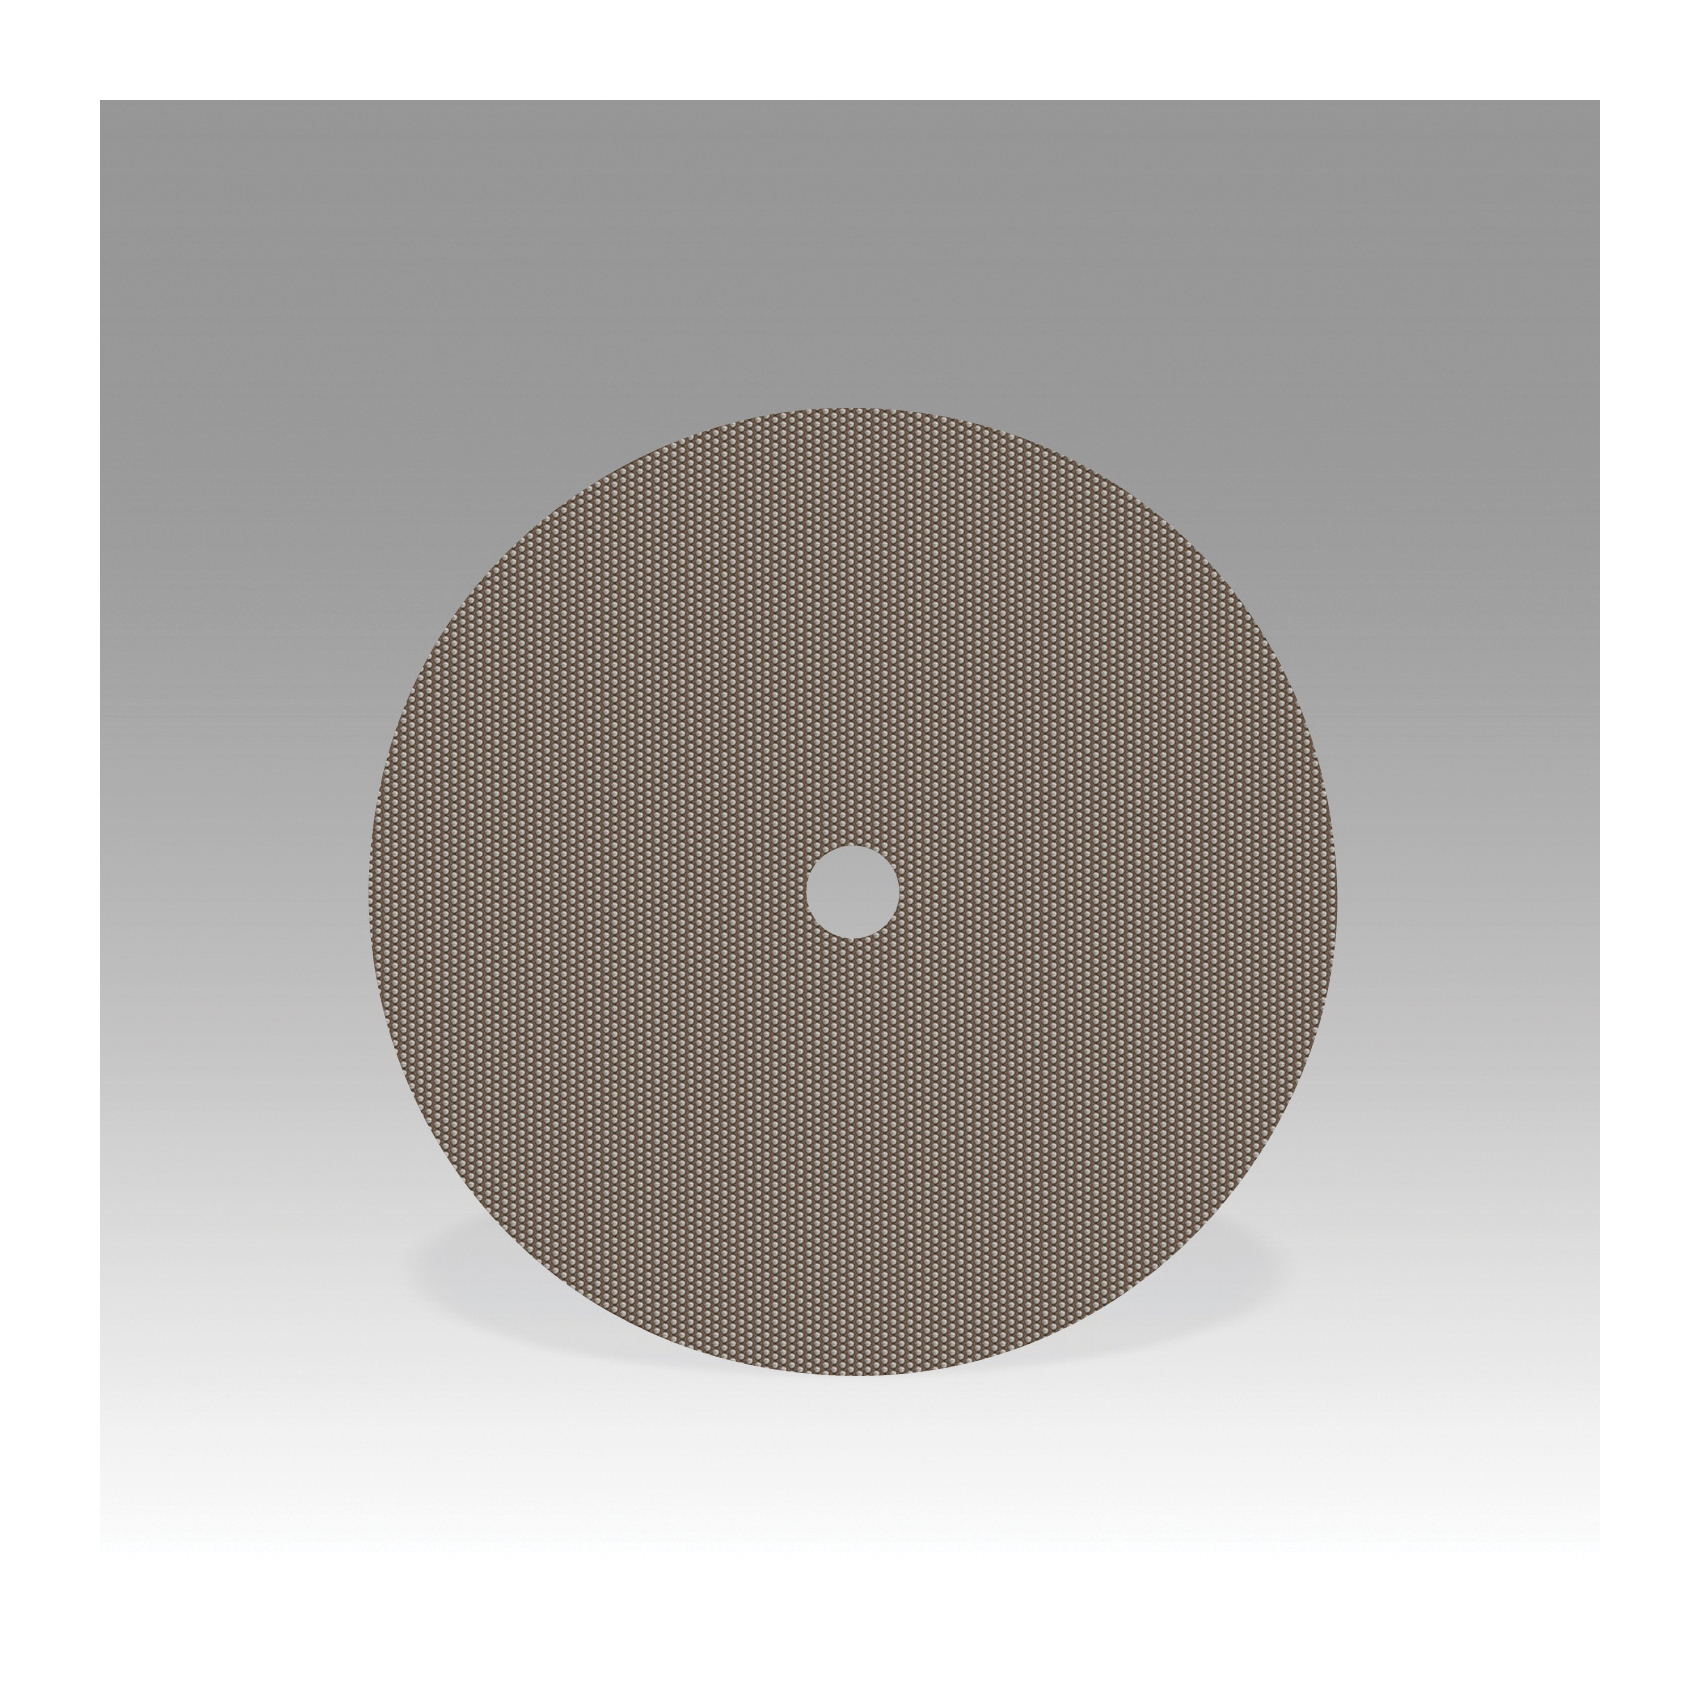 3M™ 051144-86070 6002J Flexible Coated Abrasive Disc, 4 in Dia, 1 in Arbor/Shank, M10 Grit, Super Fine Grade, Diamond Abrasive